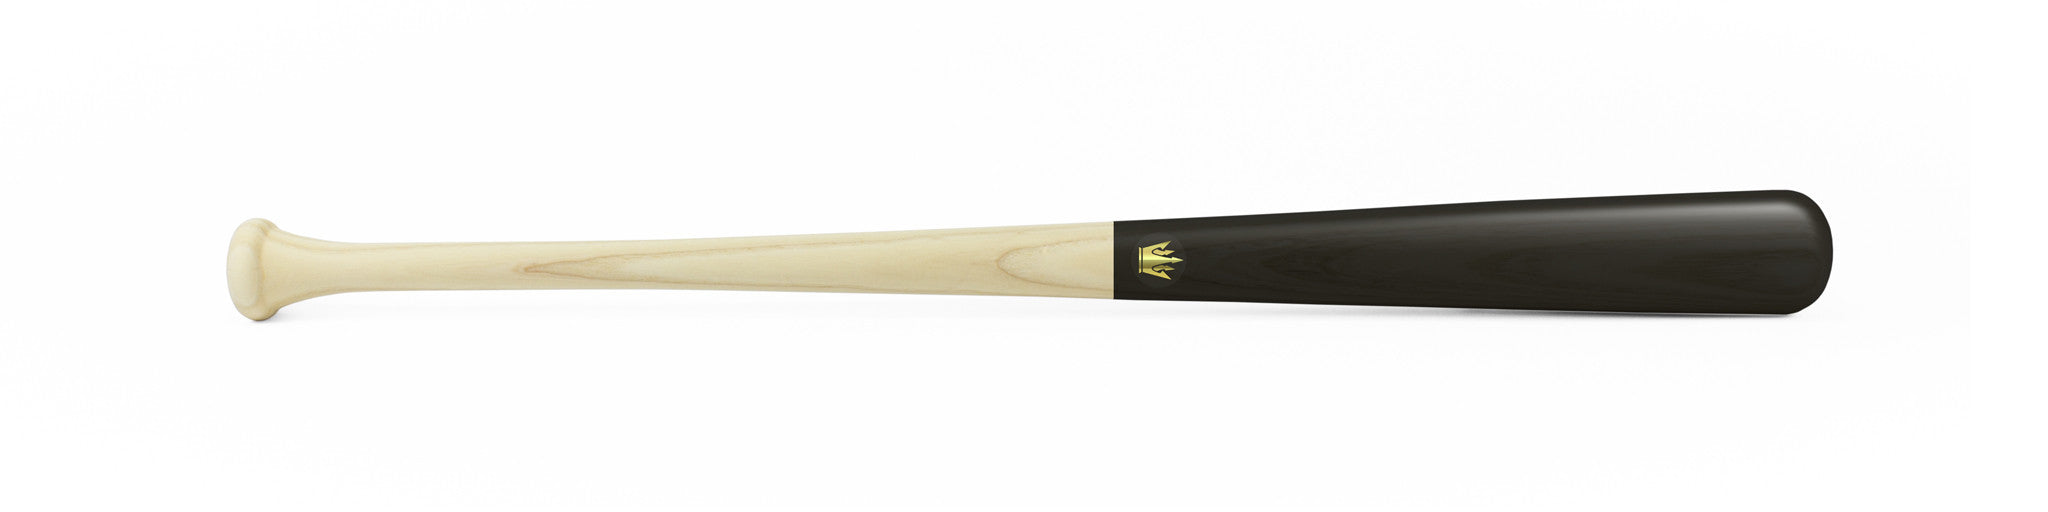 Wood bat - Ash model Y110 Black Standard - 33